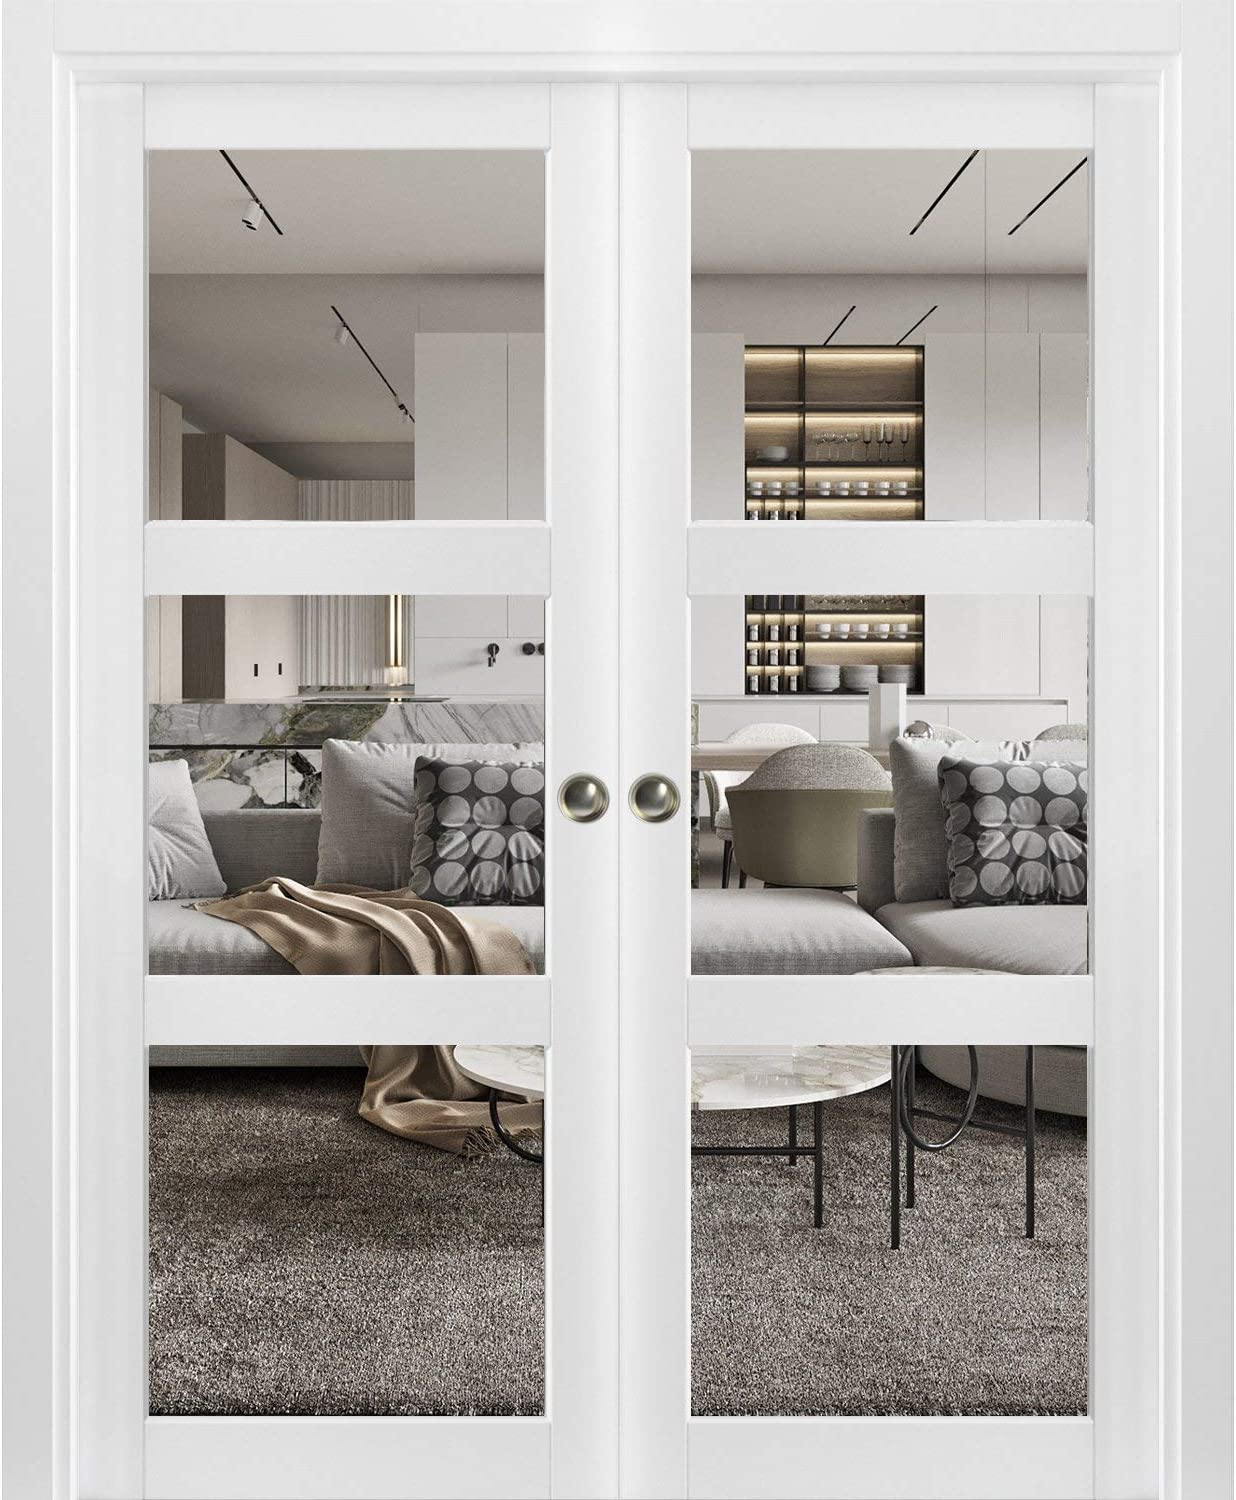 Sliding French Double Pocket Doors 84 x 96 inches Clear Glass 3 Lites| Lucia 2555 Matte White | Kit Trims Rail Hardware | Solid Wood Interior Bedroom Sturdy Doors